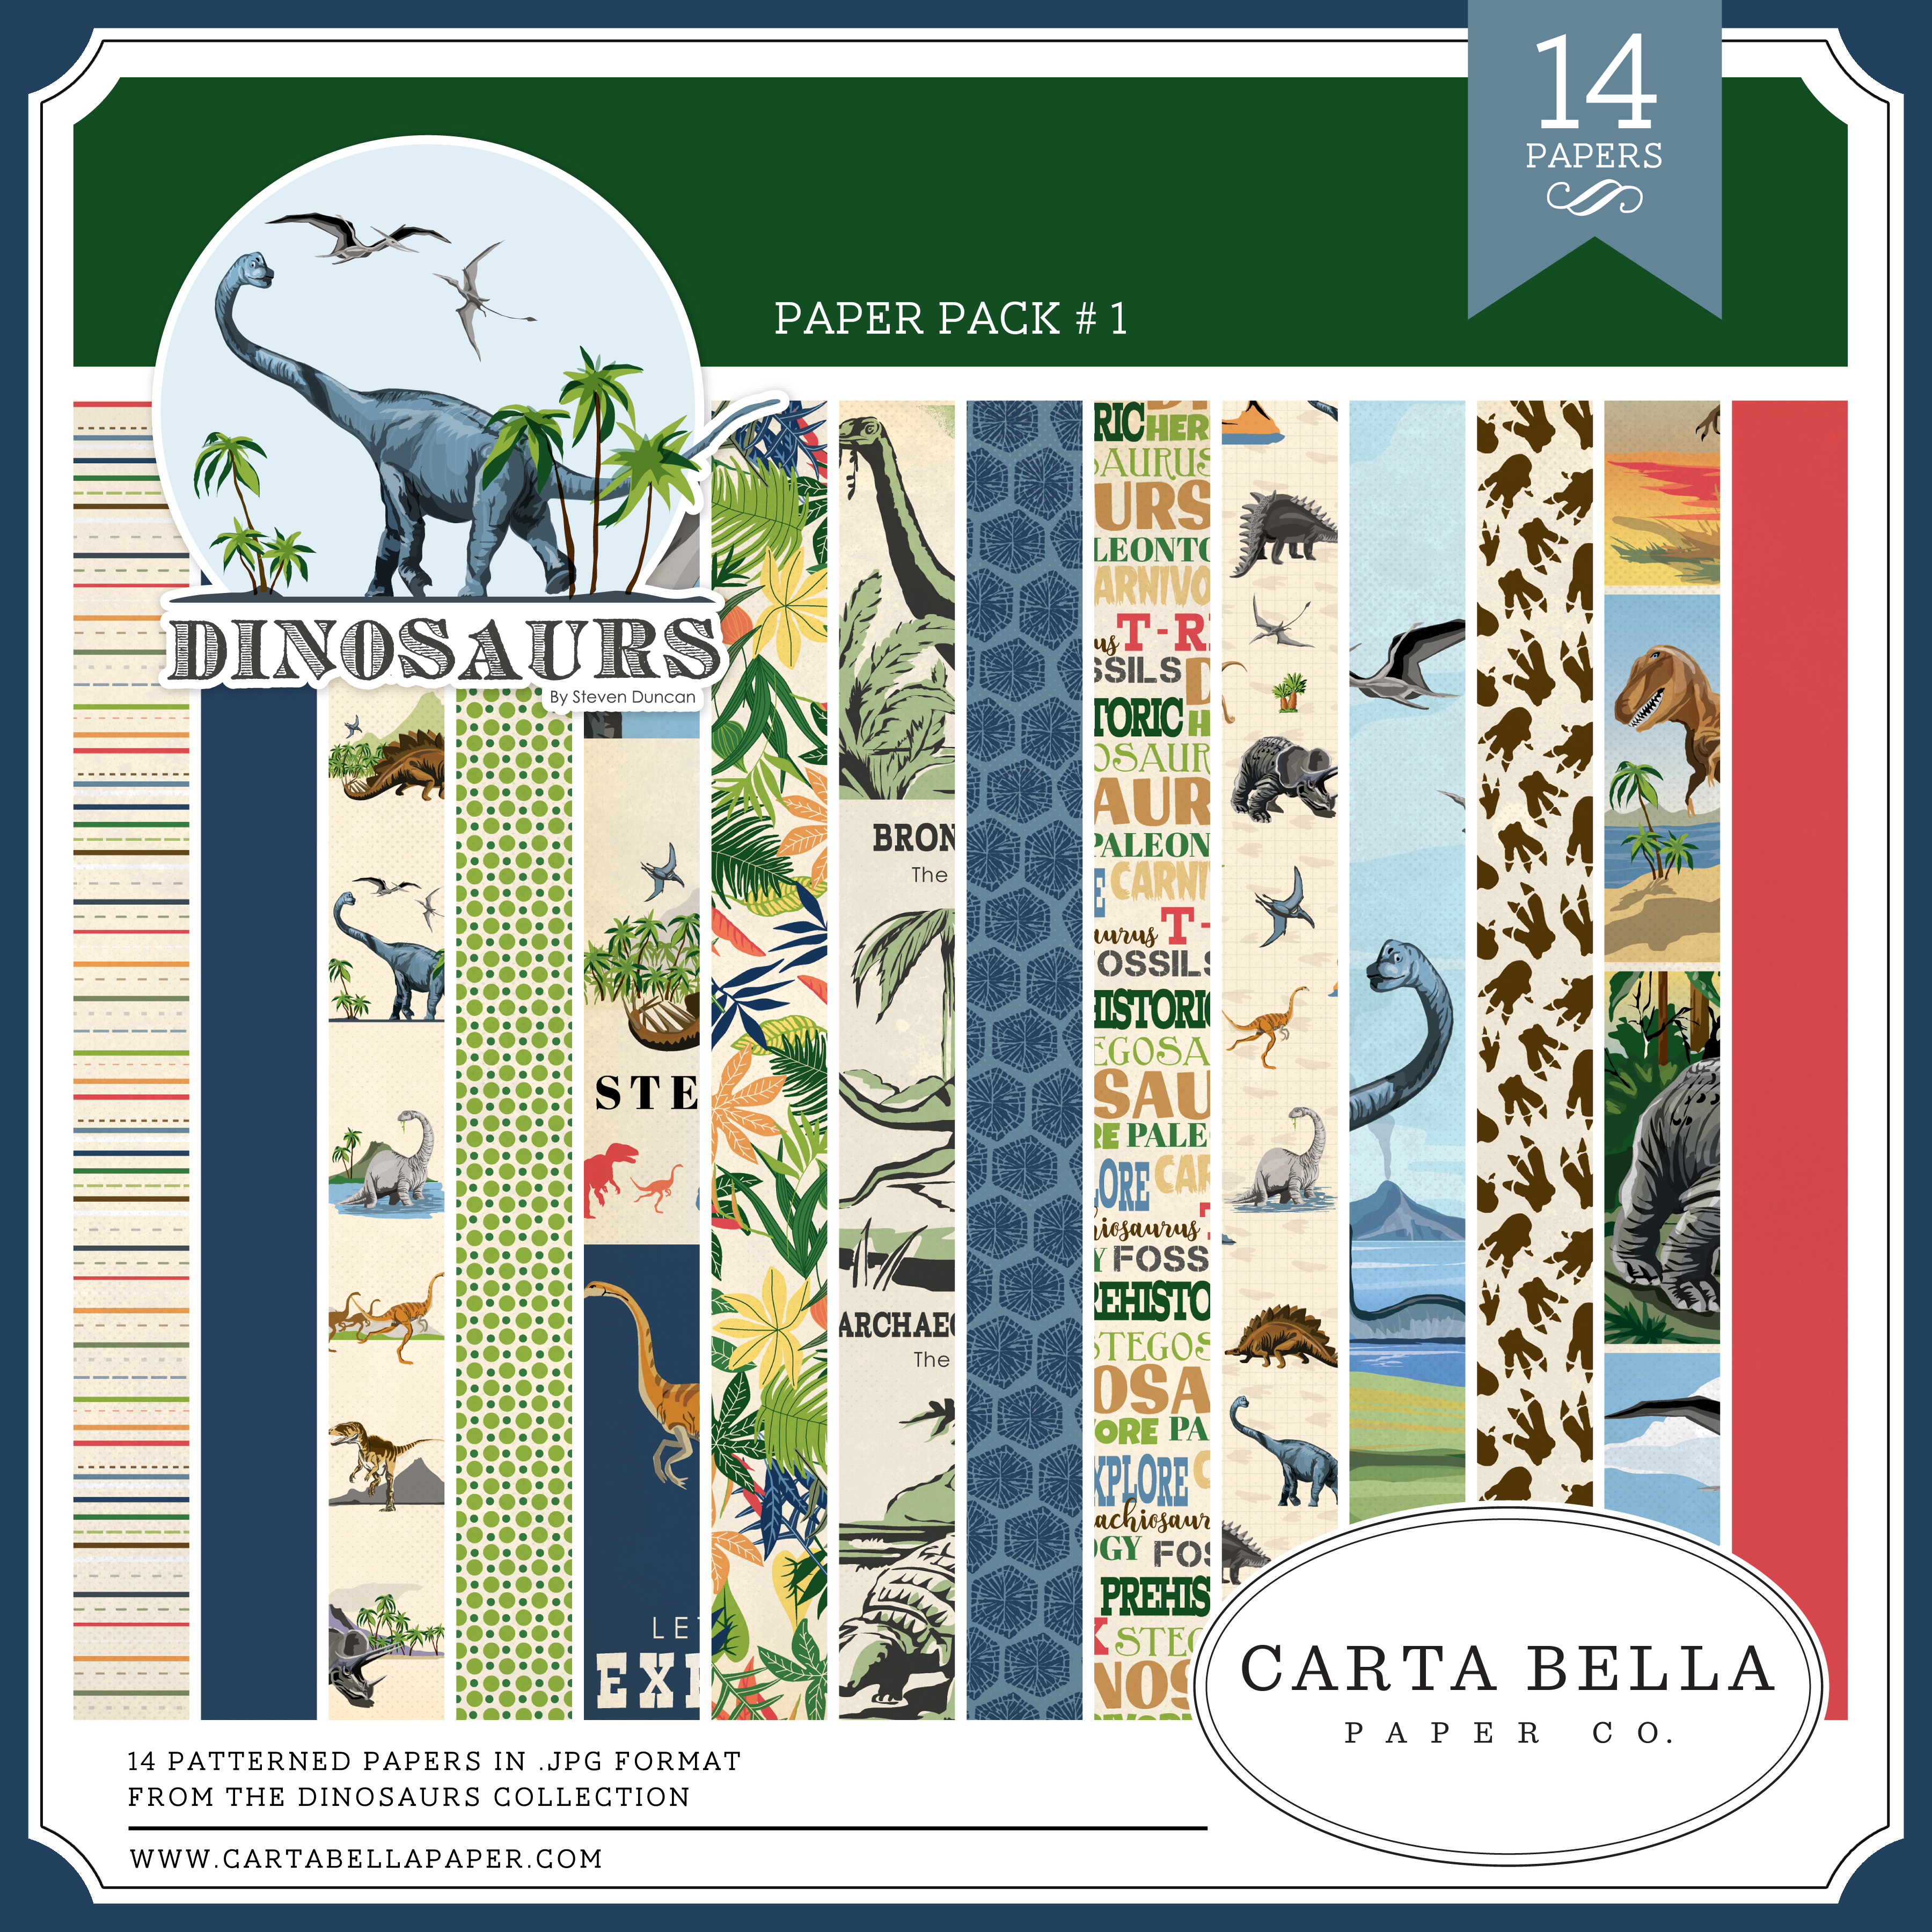 Dinosaurs Paper Pack #1